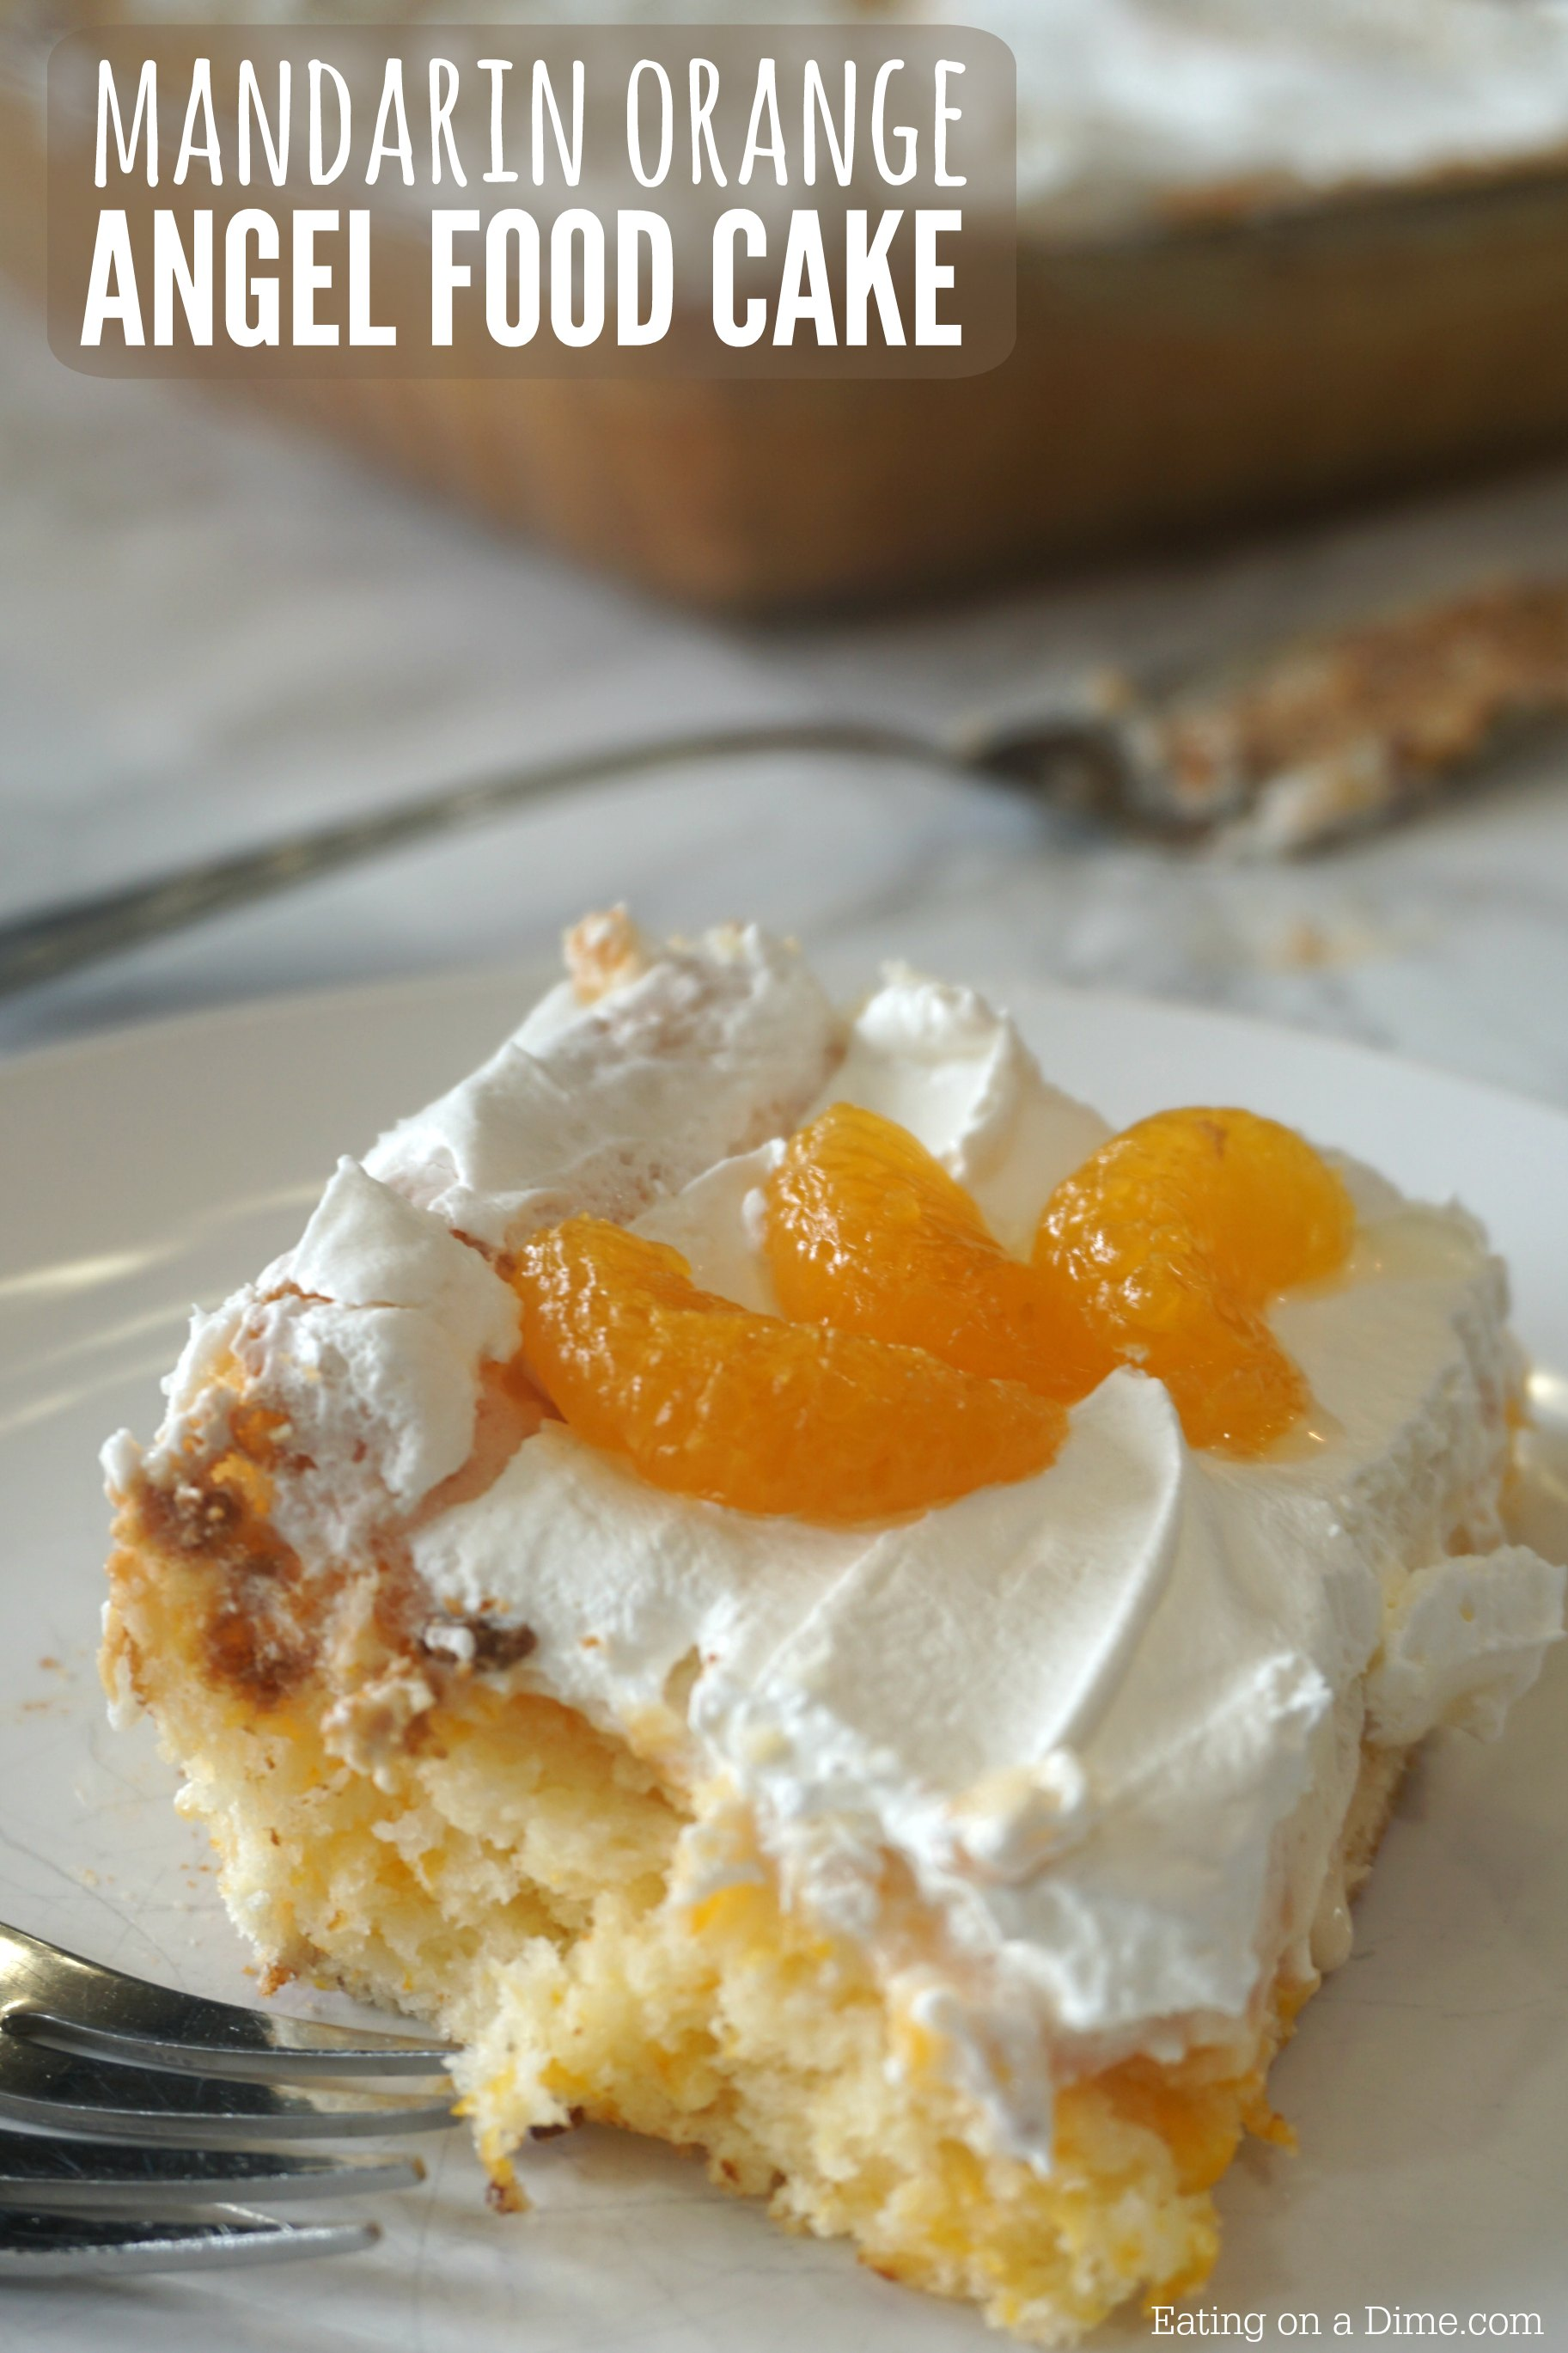 Angel Food Cake With Pineapple And Mandarin Oranges